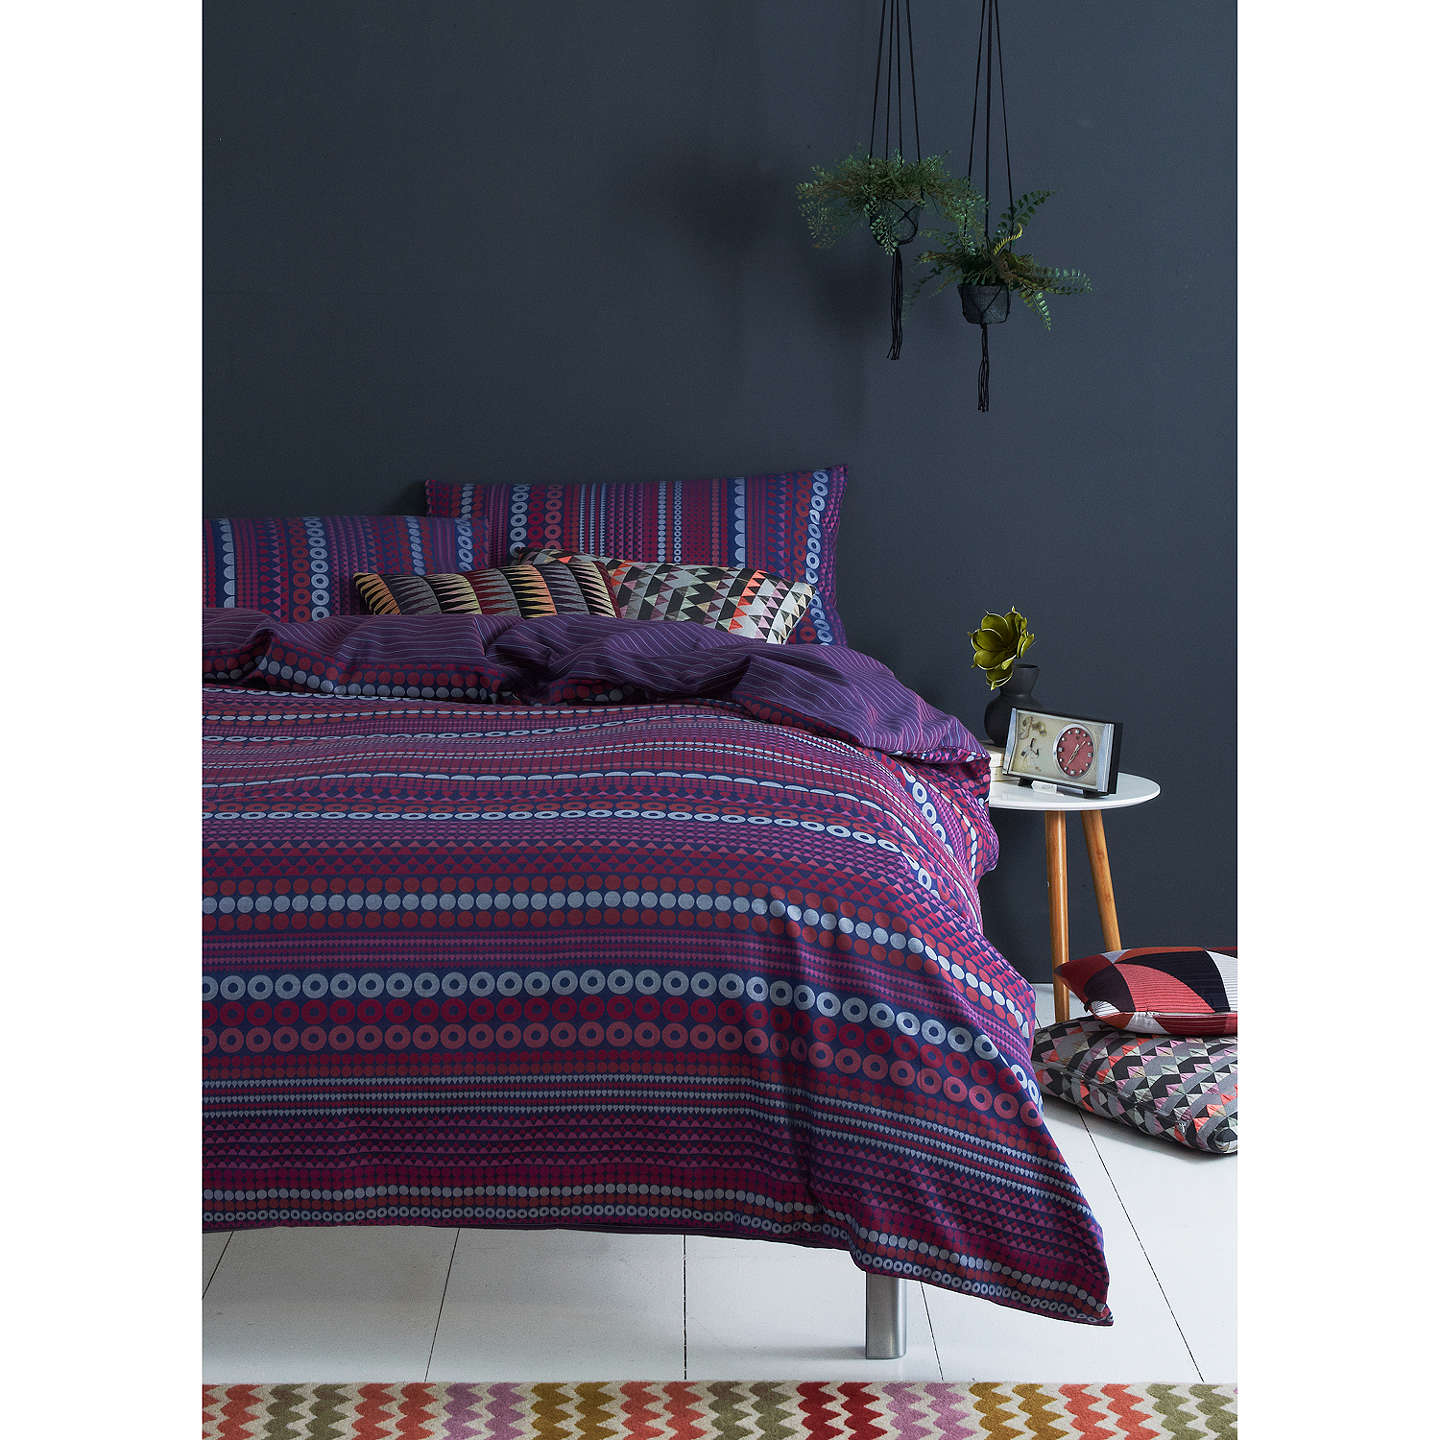 BuyMargo Selby Hastings Cotton Standard Pillowcase Online at johnlewis.com